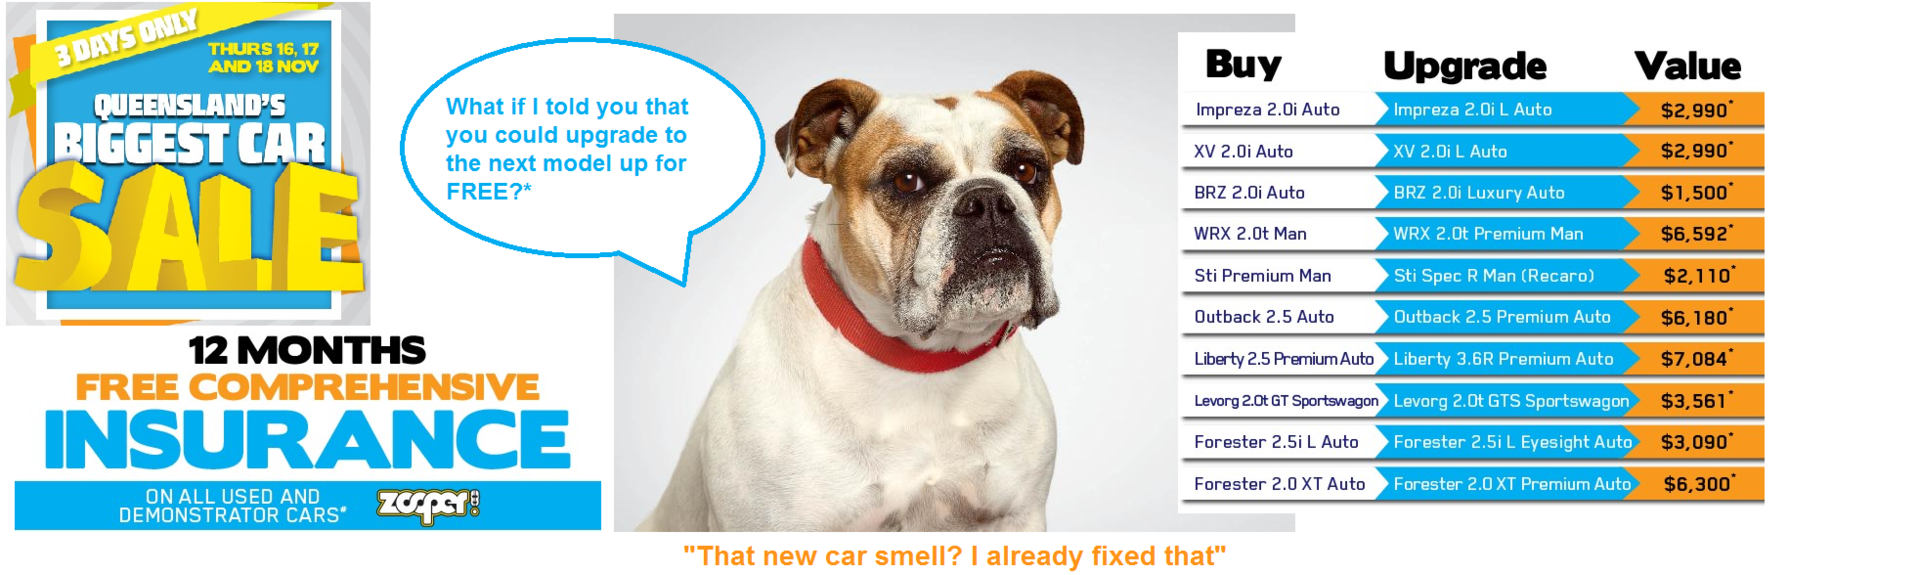 Qld's Biggest Car Sale - FREE Upgrade Offer*